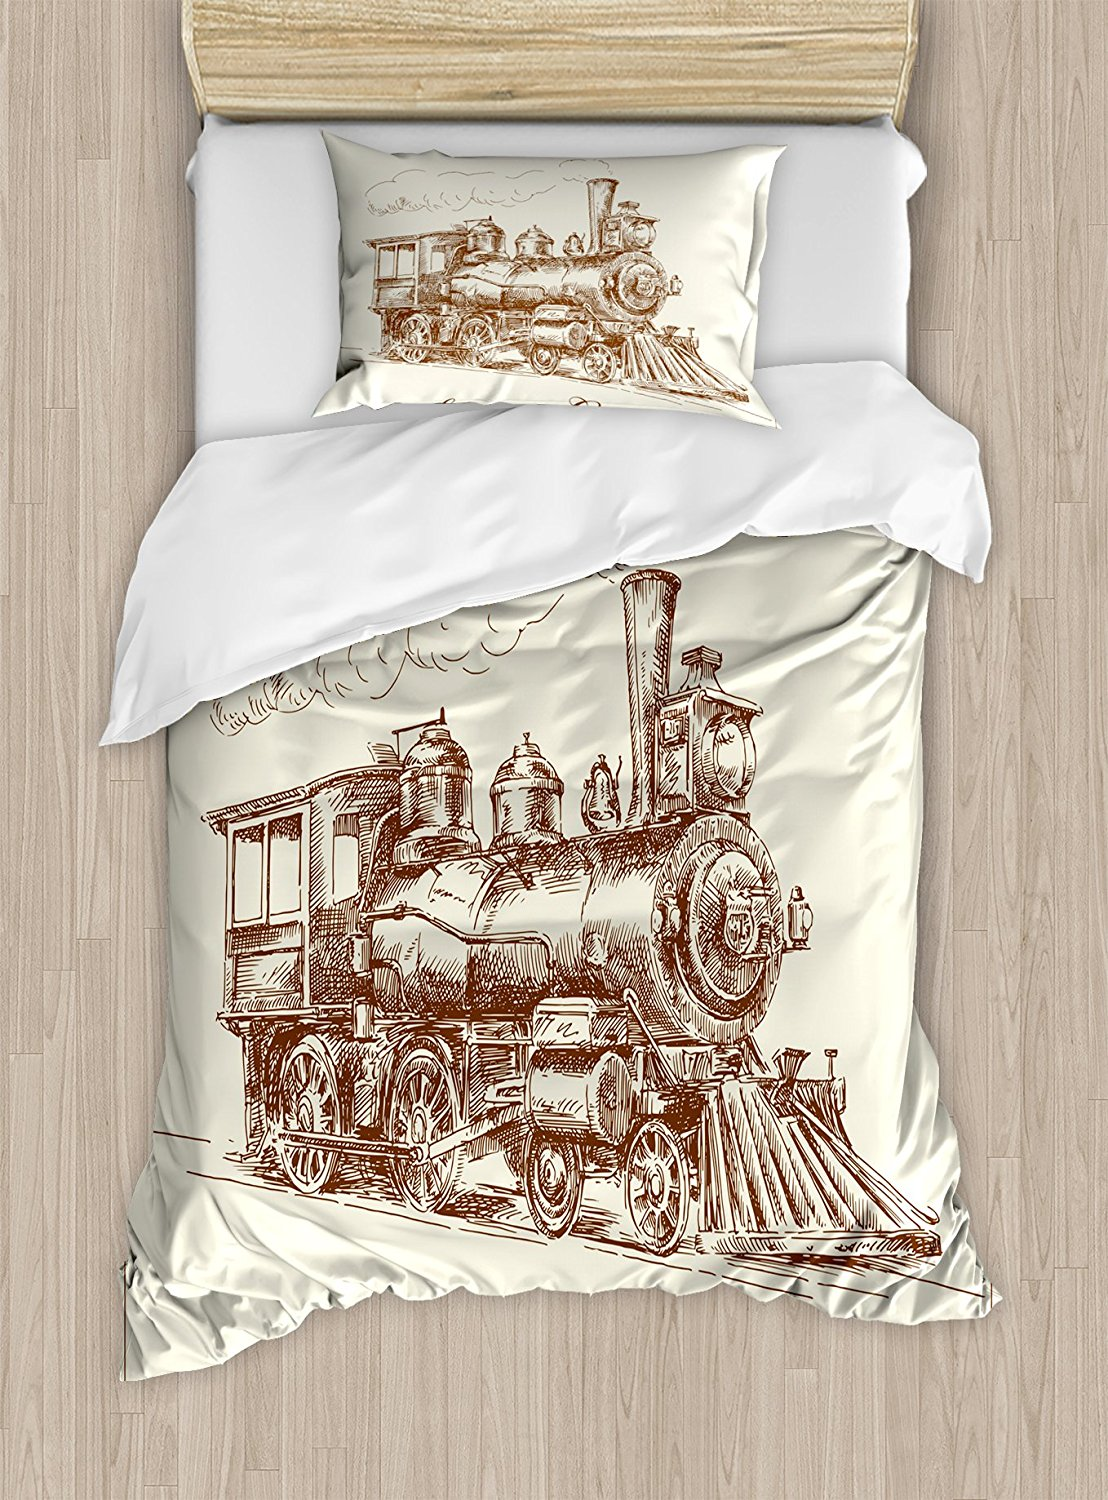 Steam Engine Duvet Cover Set, Old Times Train Vintage Hand Drawn Iron Industrial Era Locomotive, 4 Piece Bedding Set